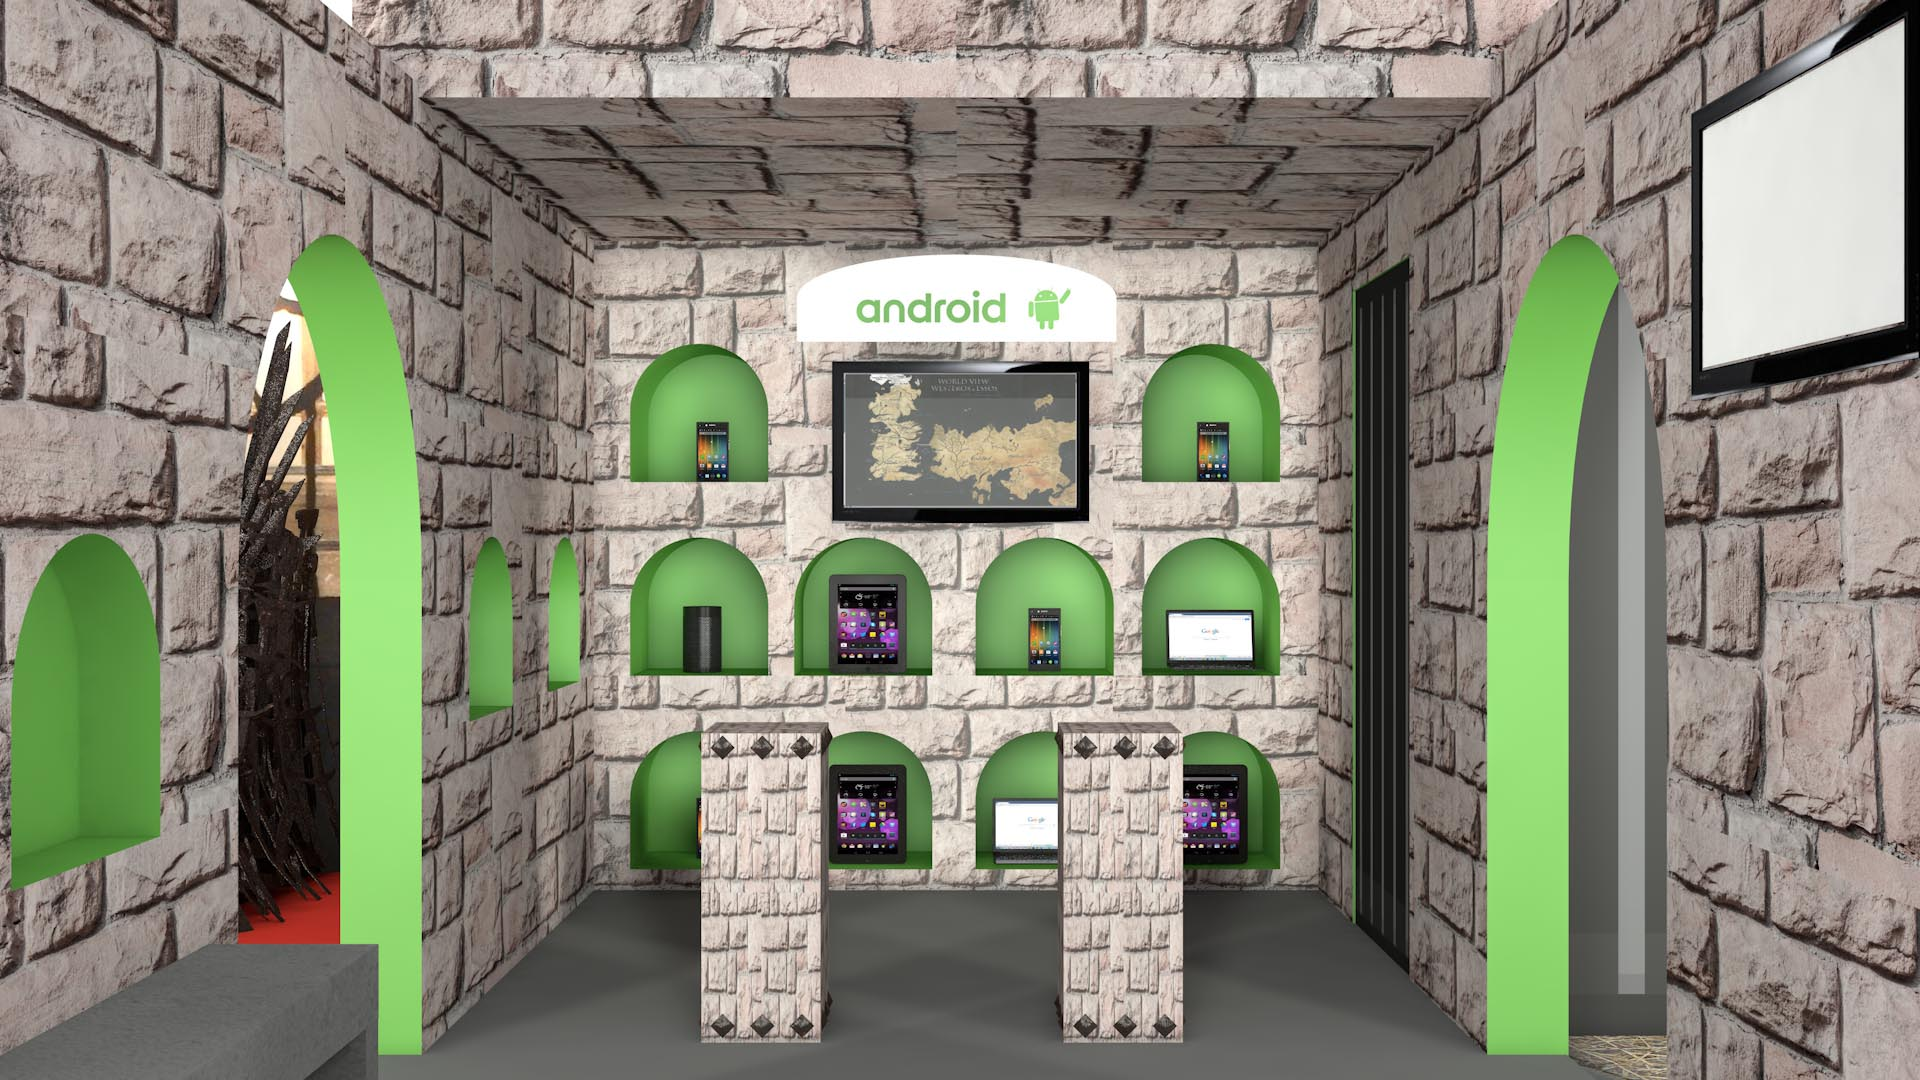 Exhibition Stand Design Android Game of Thrones Characters